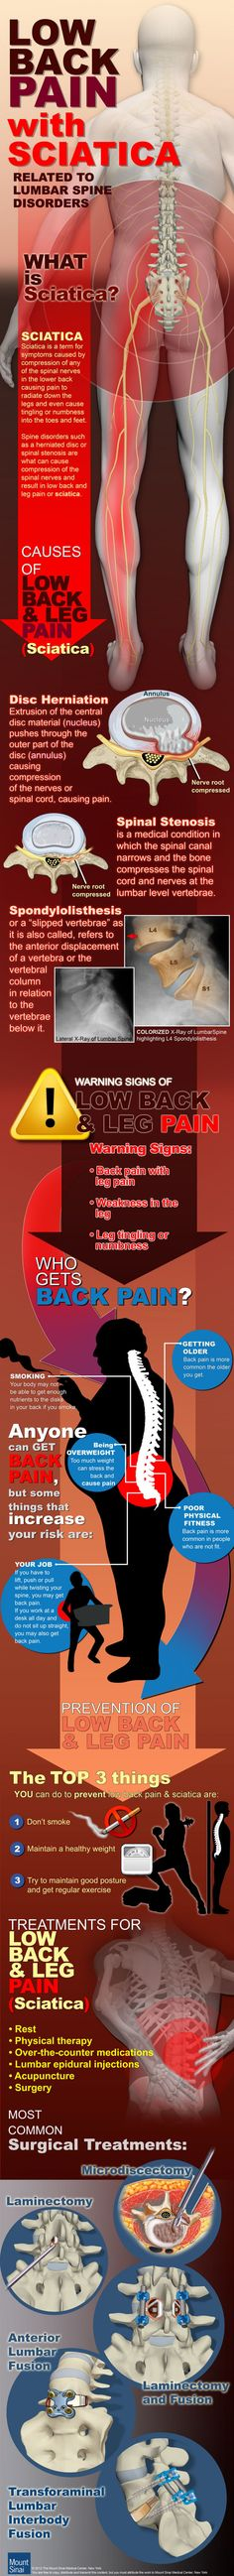 Low Back Pain with Sciatica  Infographic